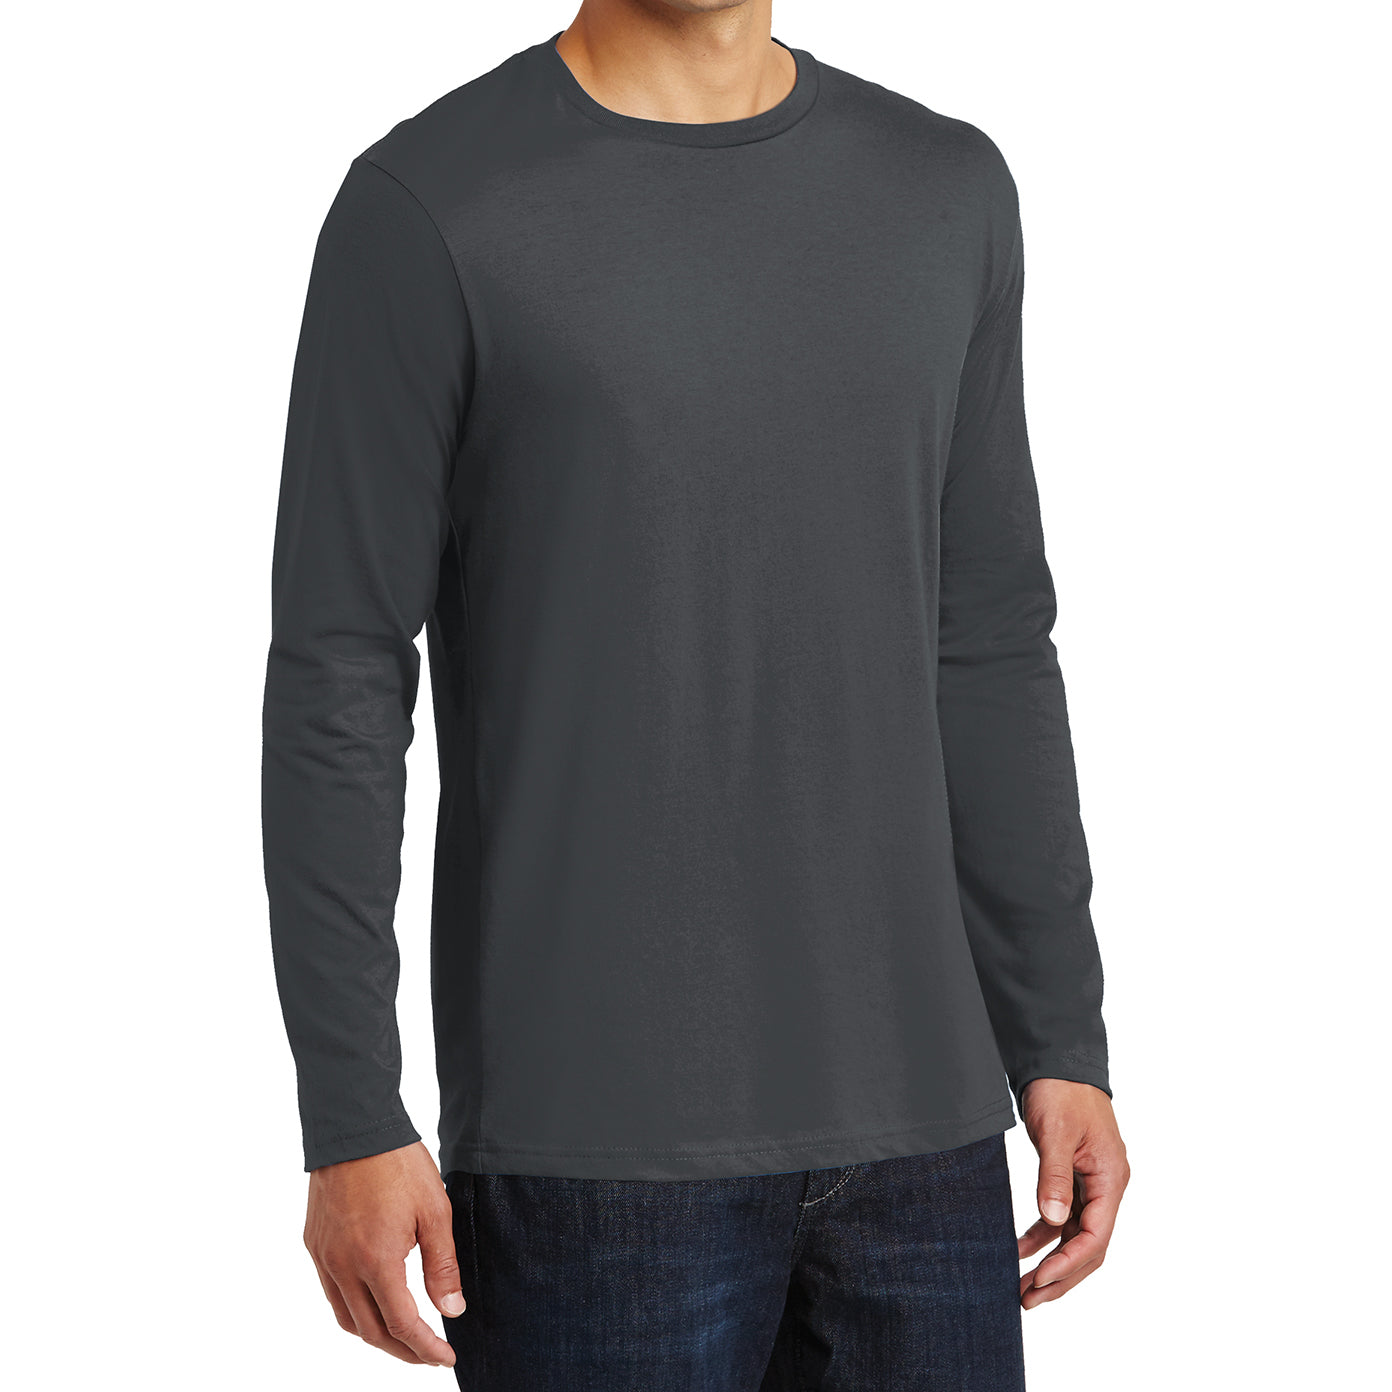 Mens Perfect Weight Long Sleeve Tee - Charcoal - Side